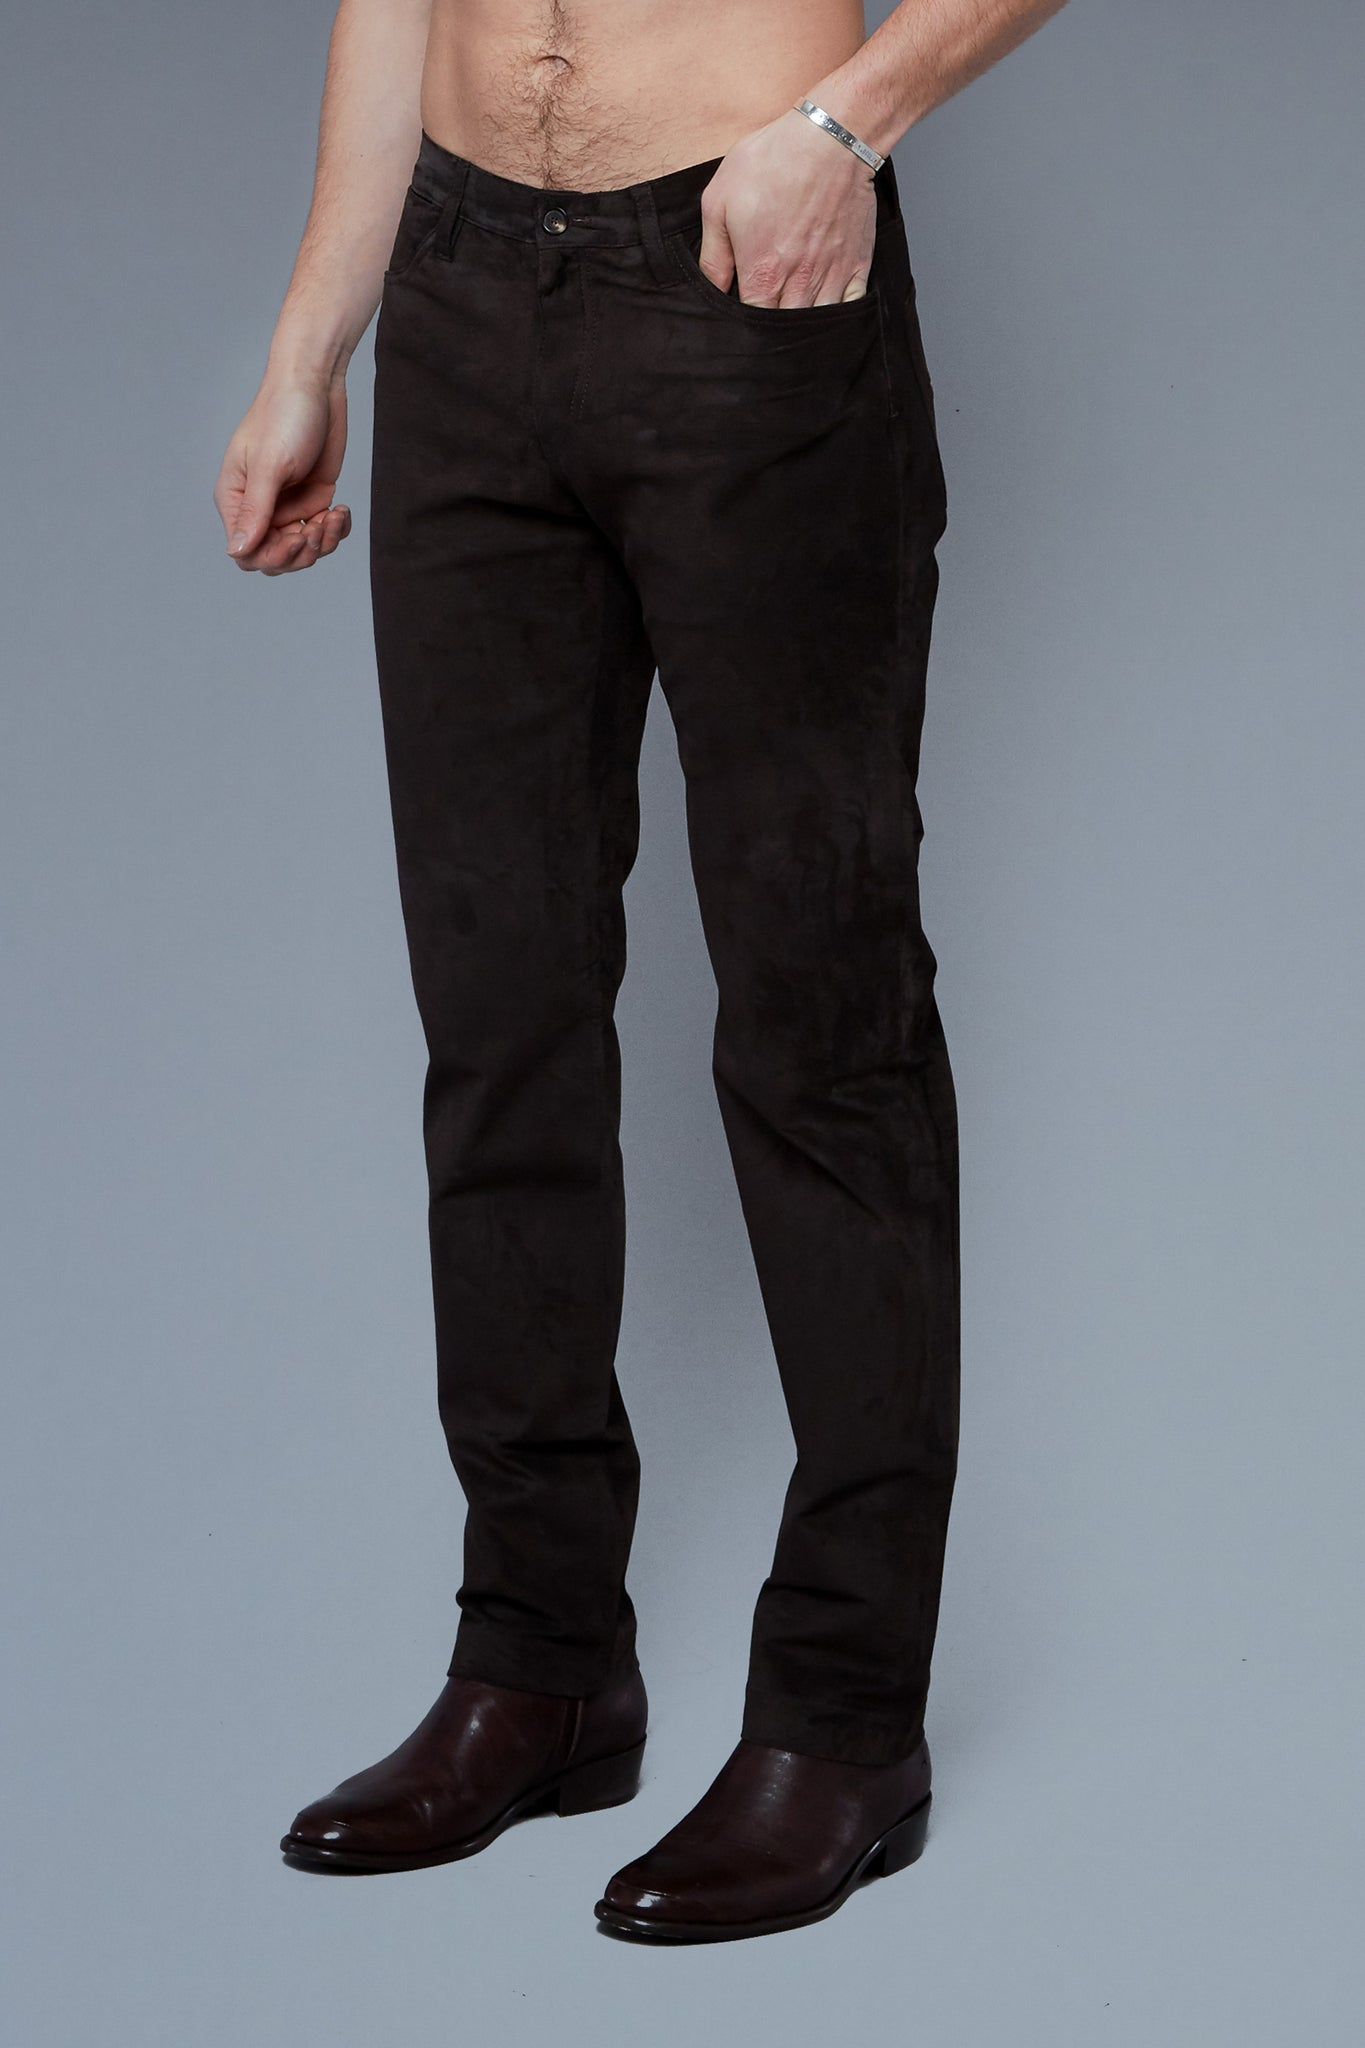 Three Quarter View: Model Hans Weiner wearing Suede 5 Pocket Pants